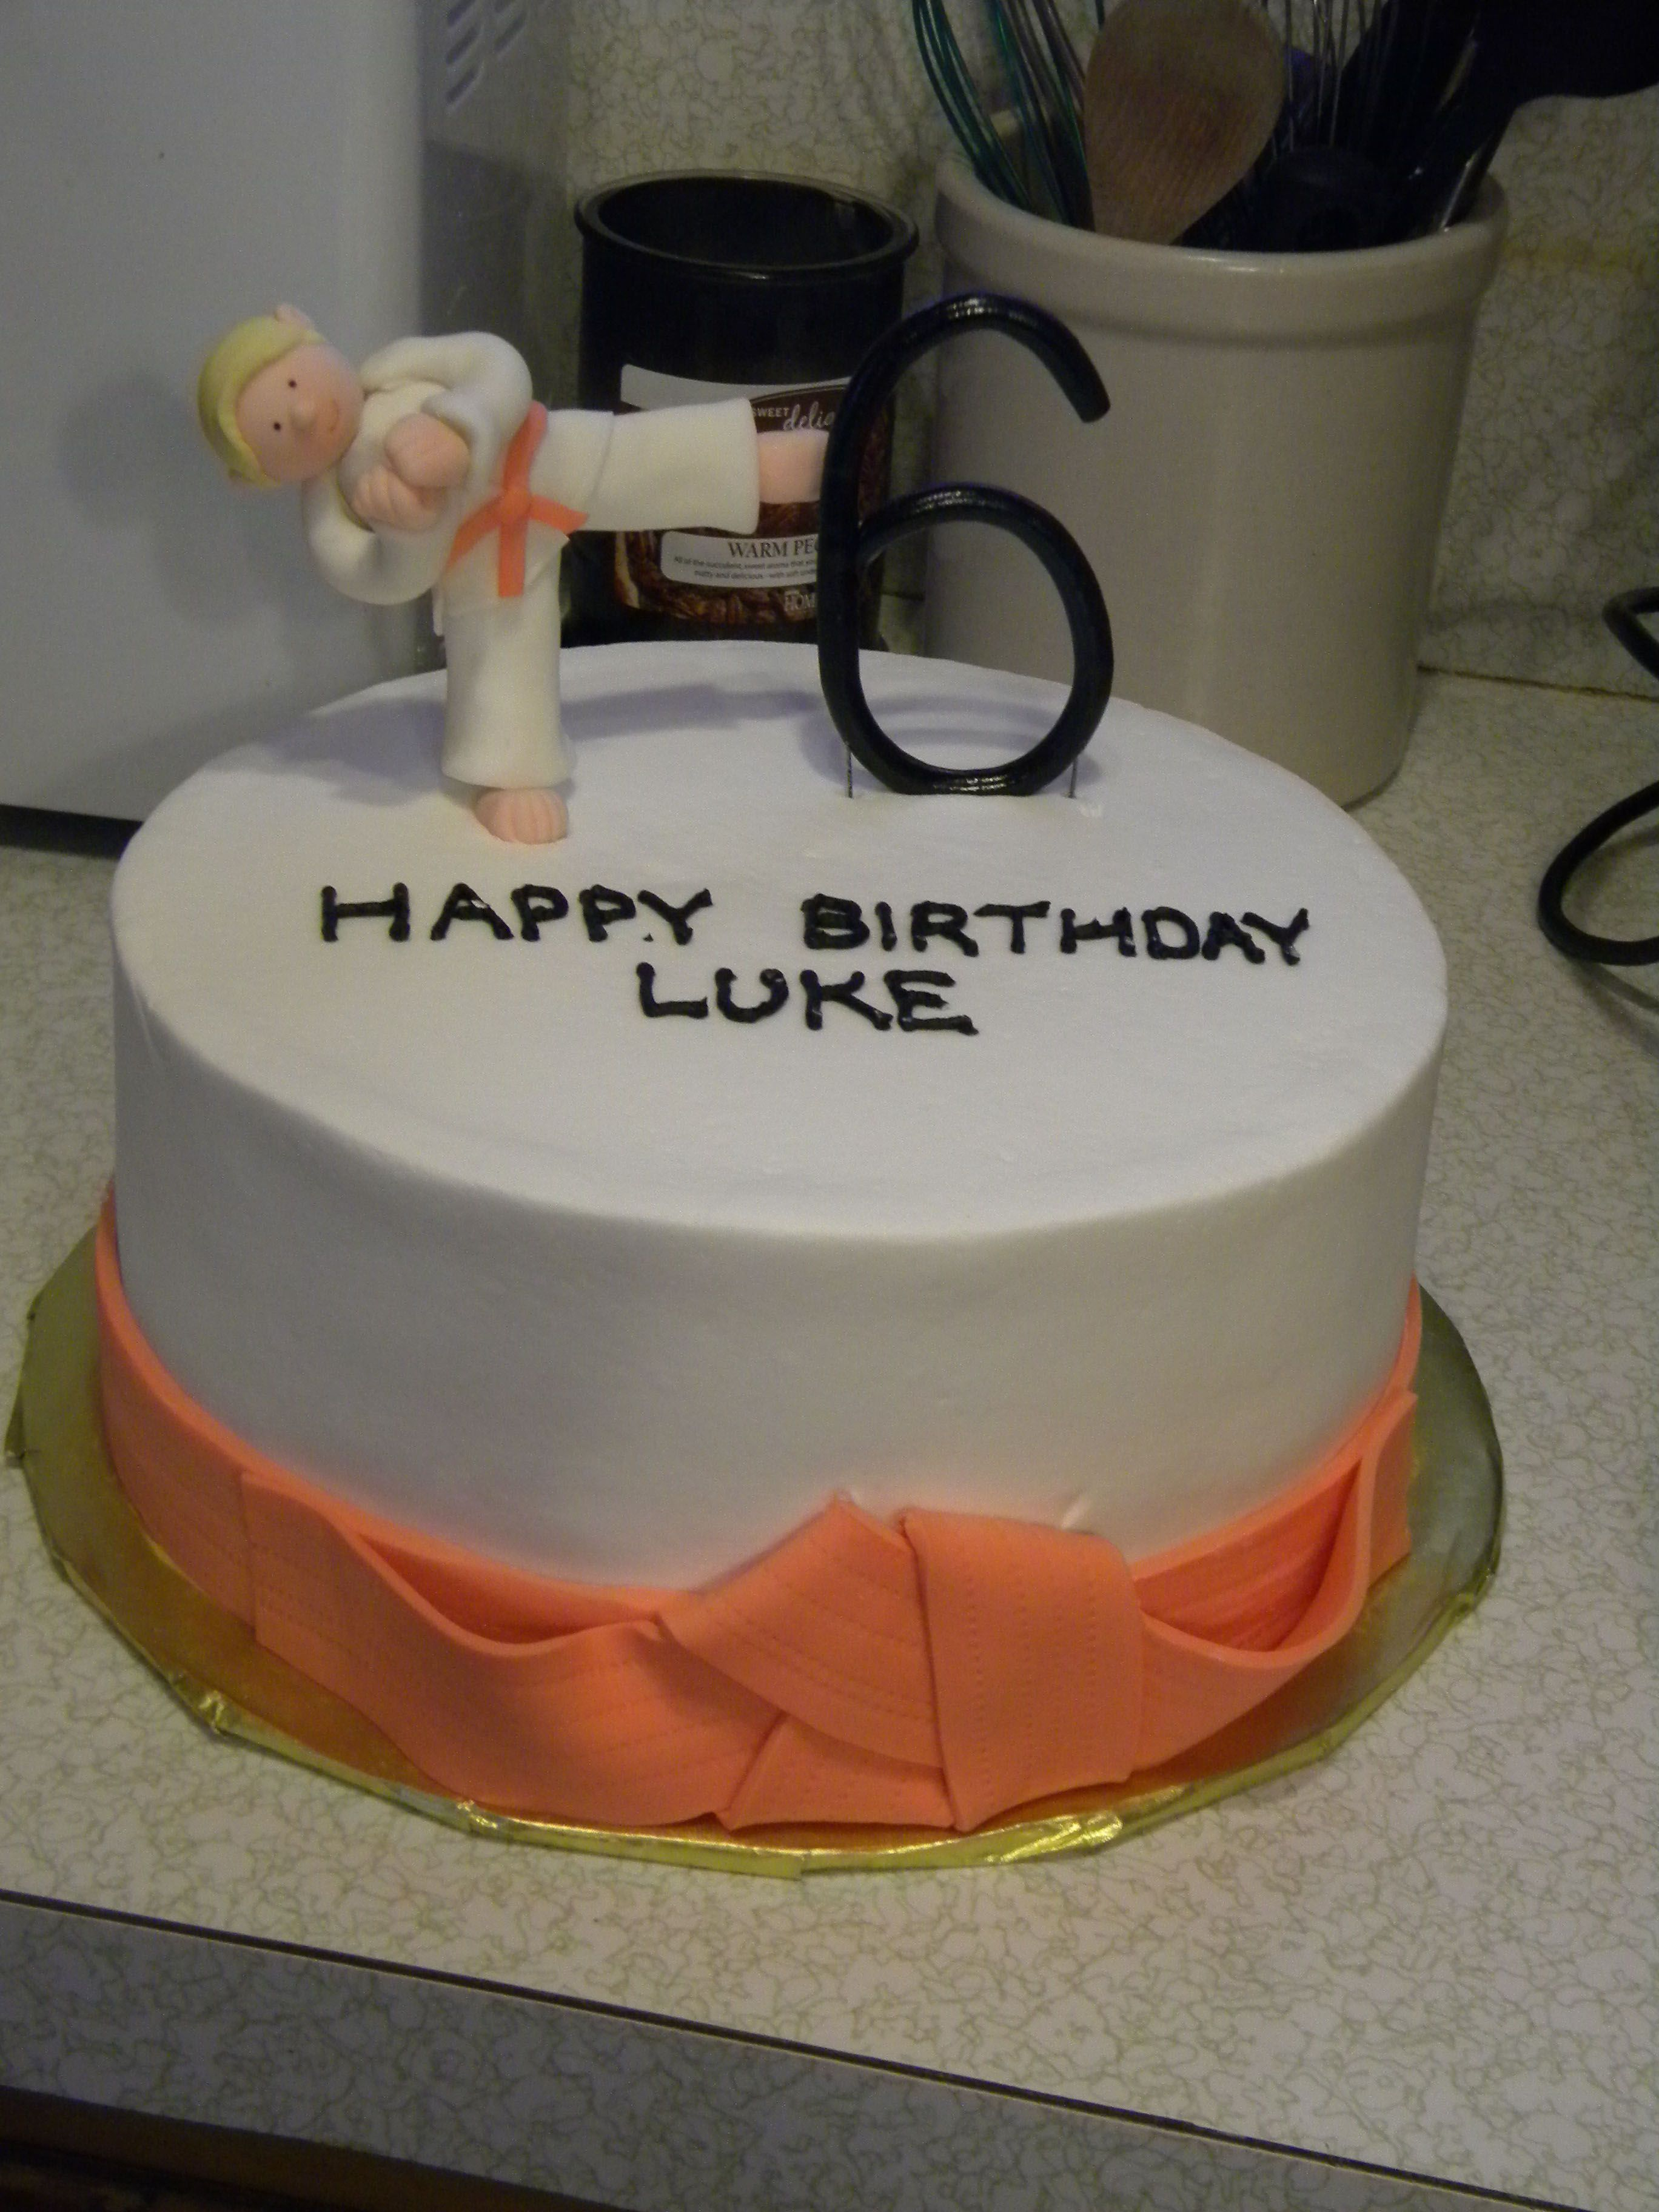 Karate Kid 6th birthday cake for my friends son who is an orange